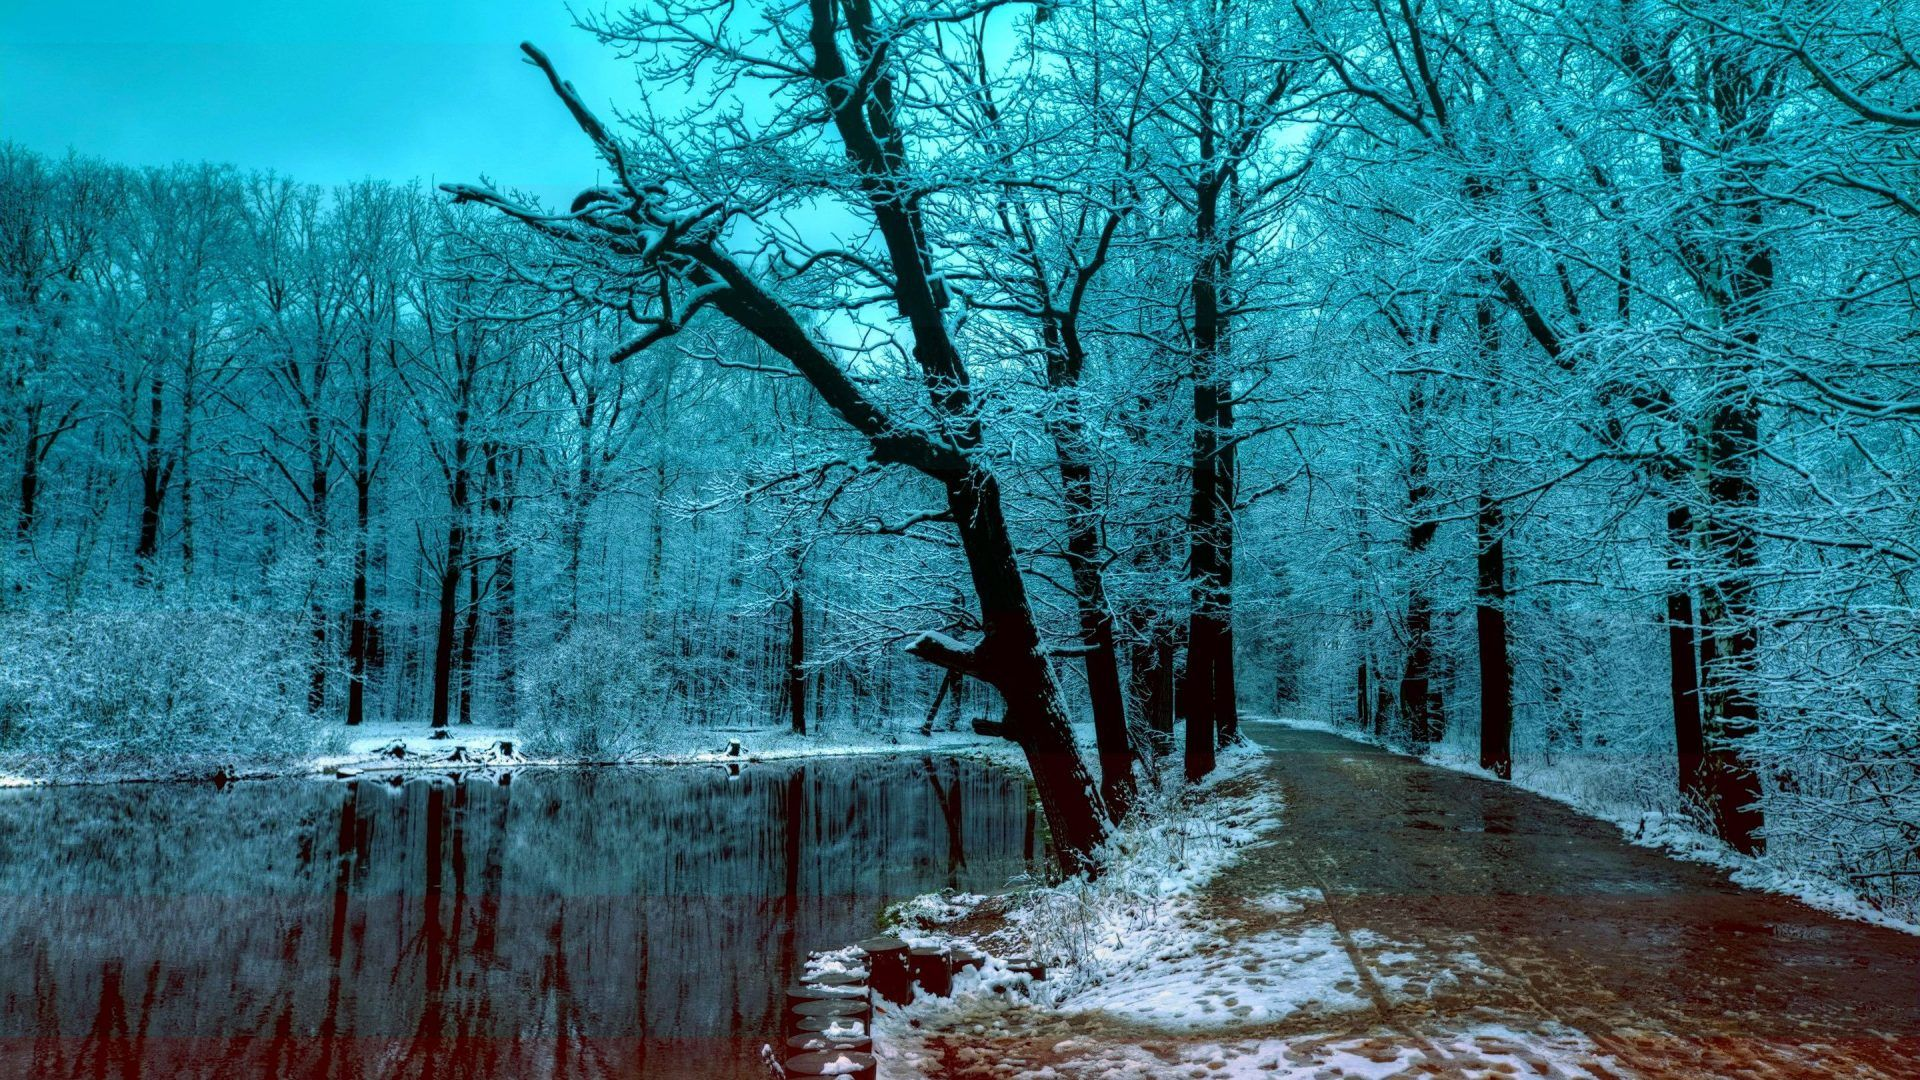 Download Wallpaper 1920x1080 Forest, Winter, Snow